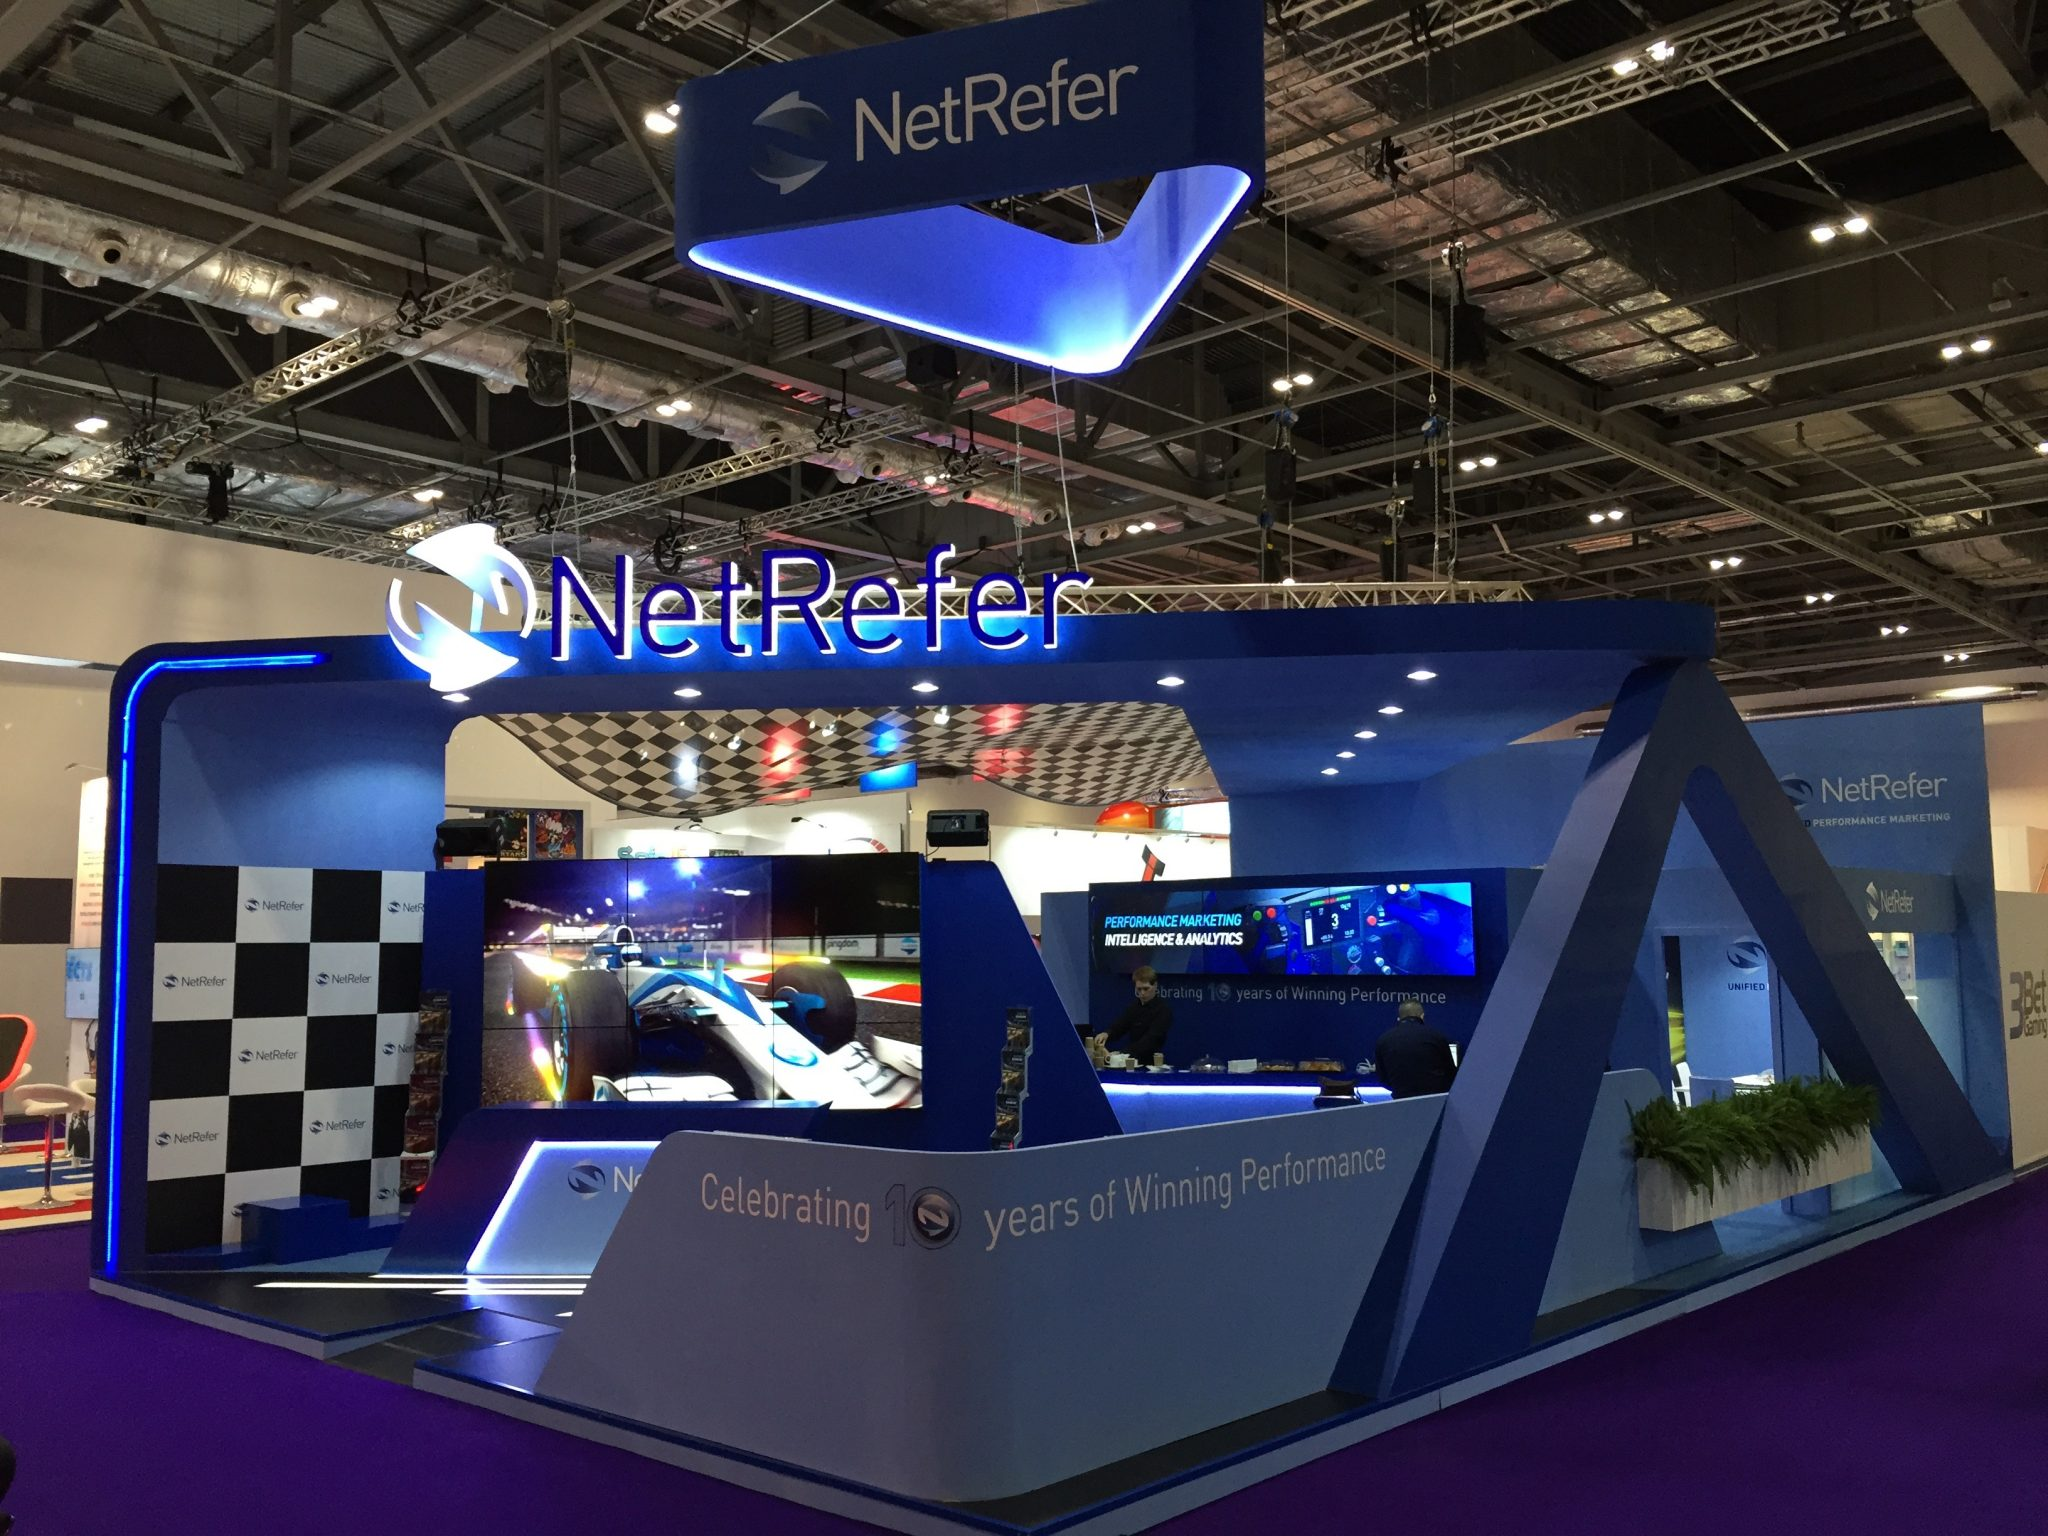 Our exhibition stand for NetRefer